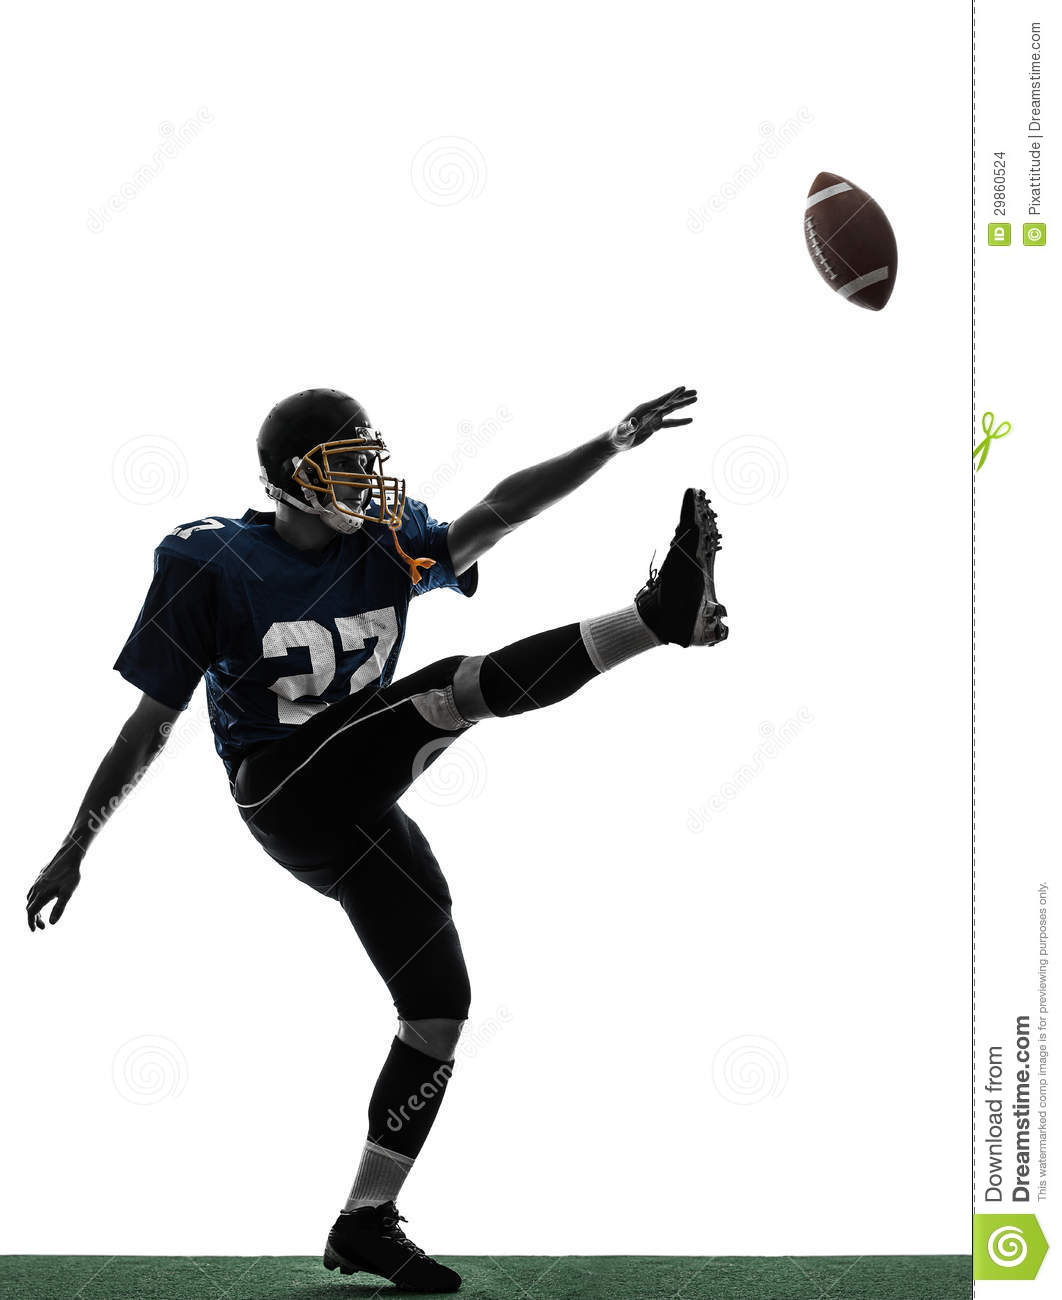 ... Player Running Silhouette | Clipart Panda - Free Clipart Images